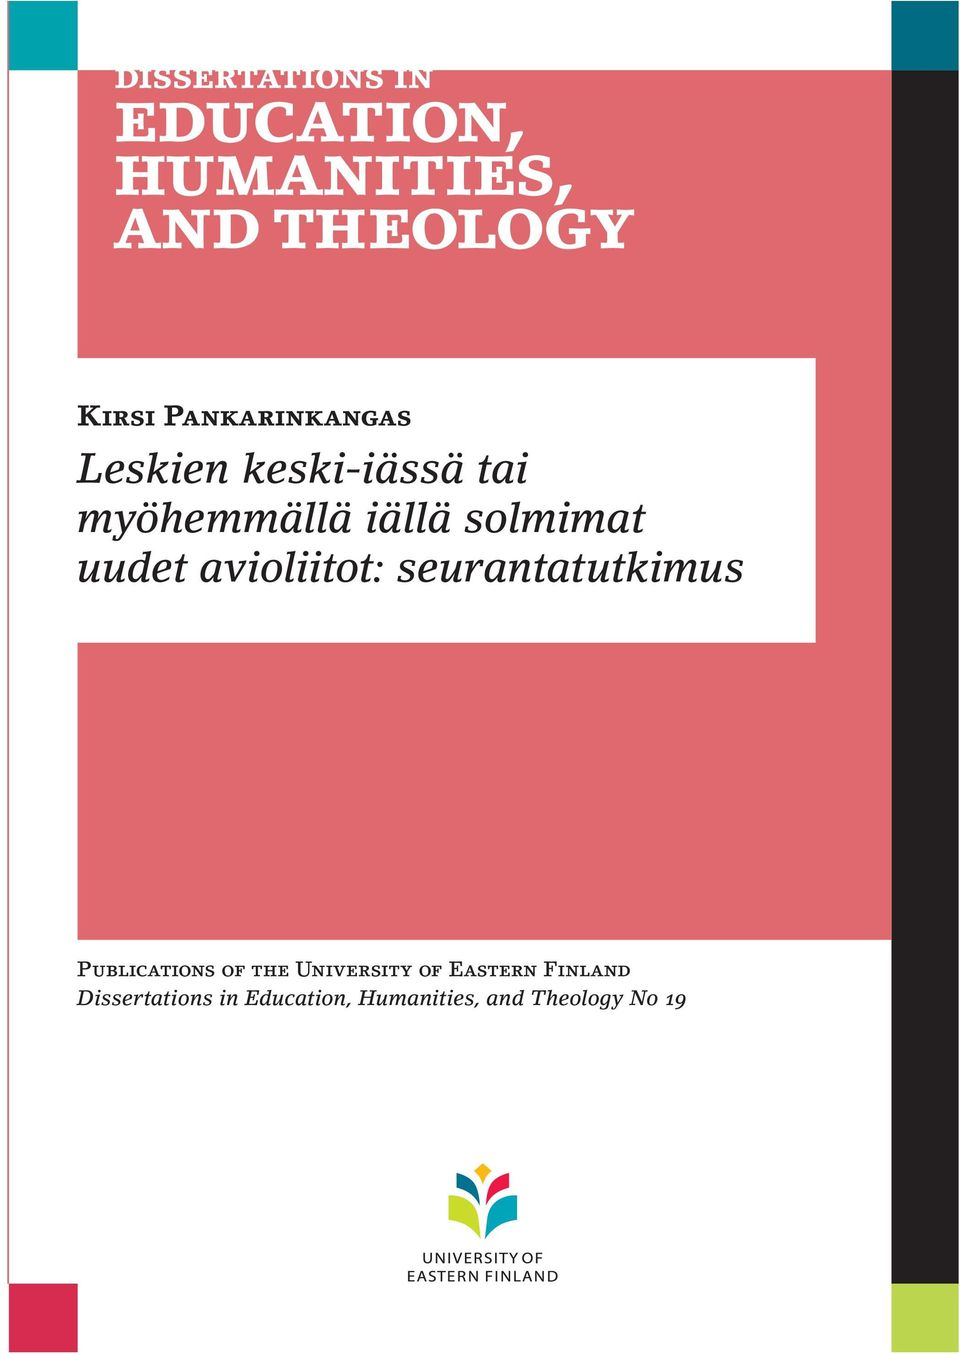 seurantatutkimus Publications of the University of